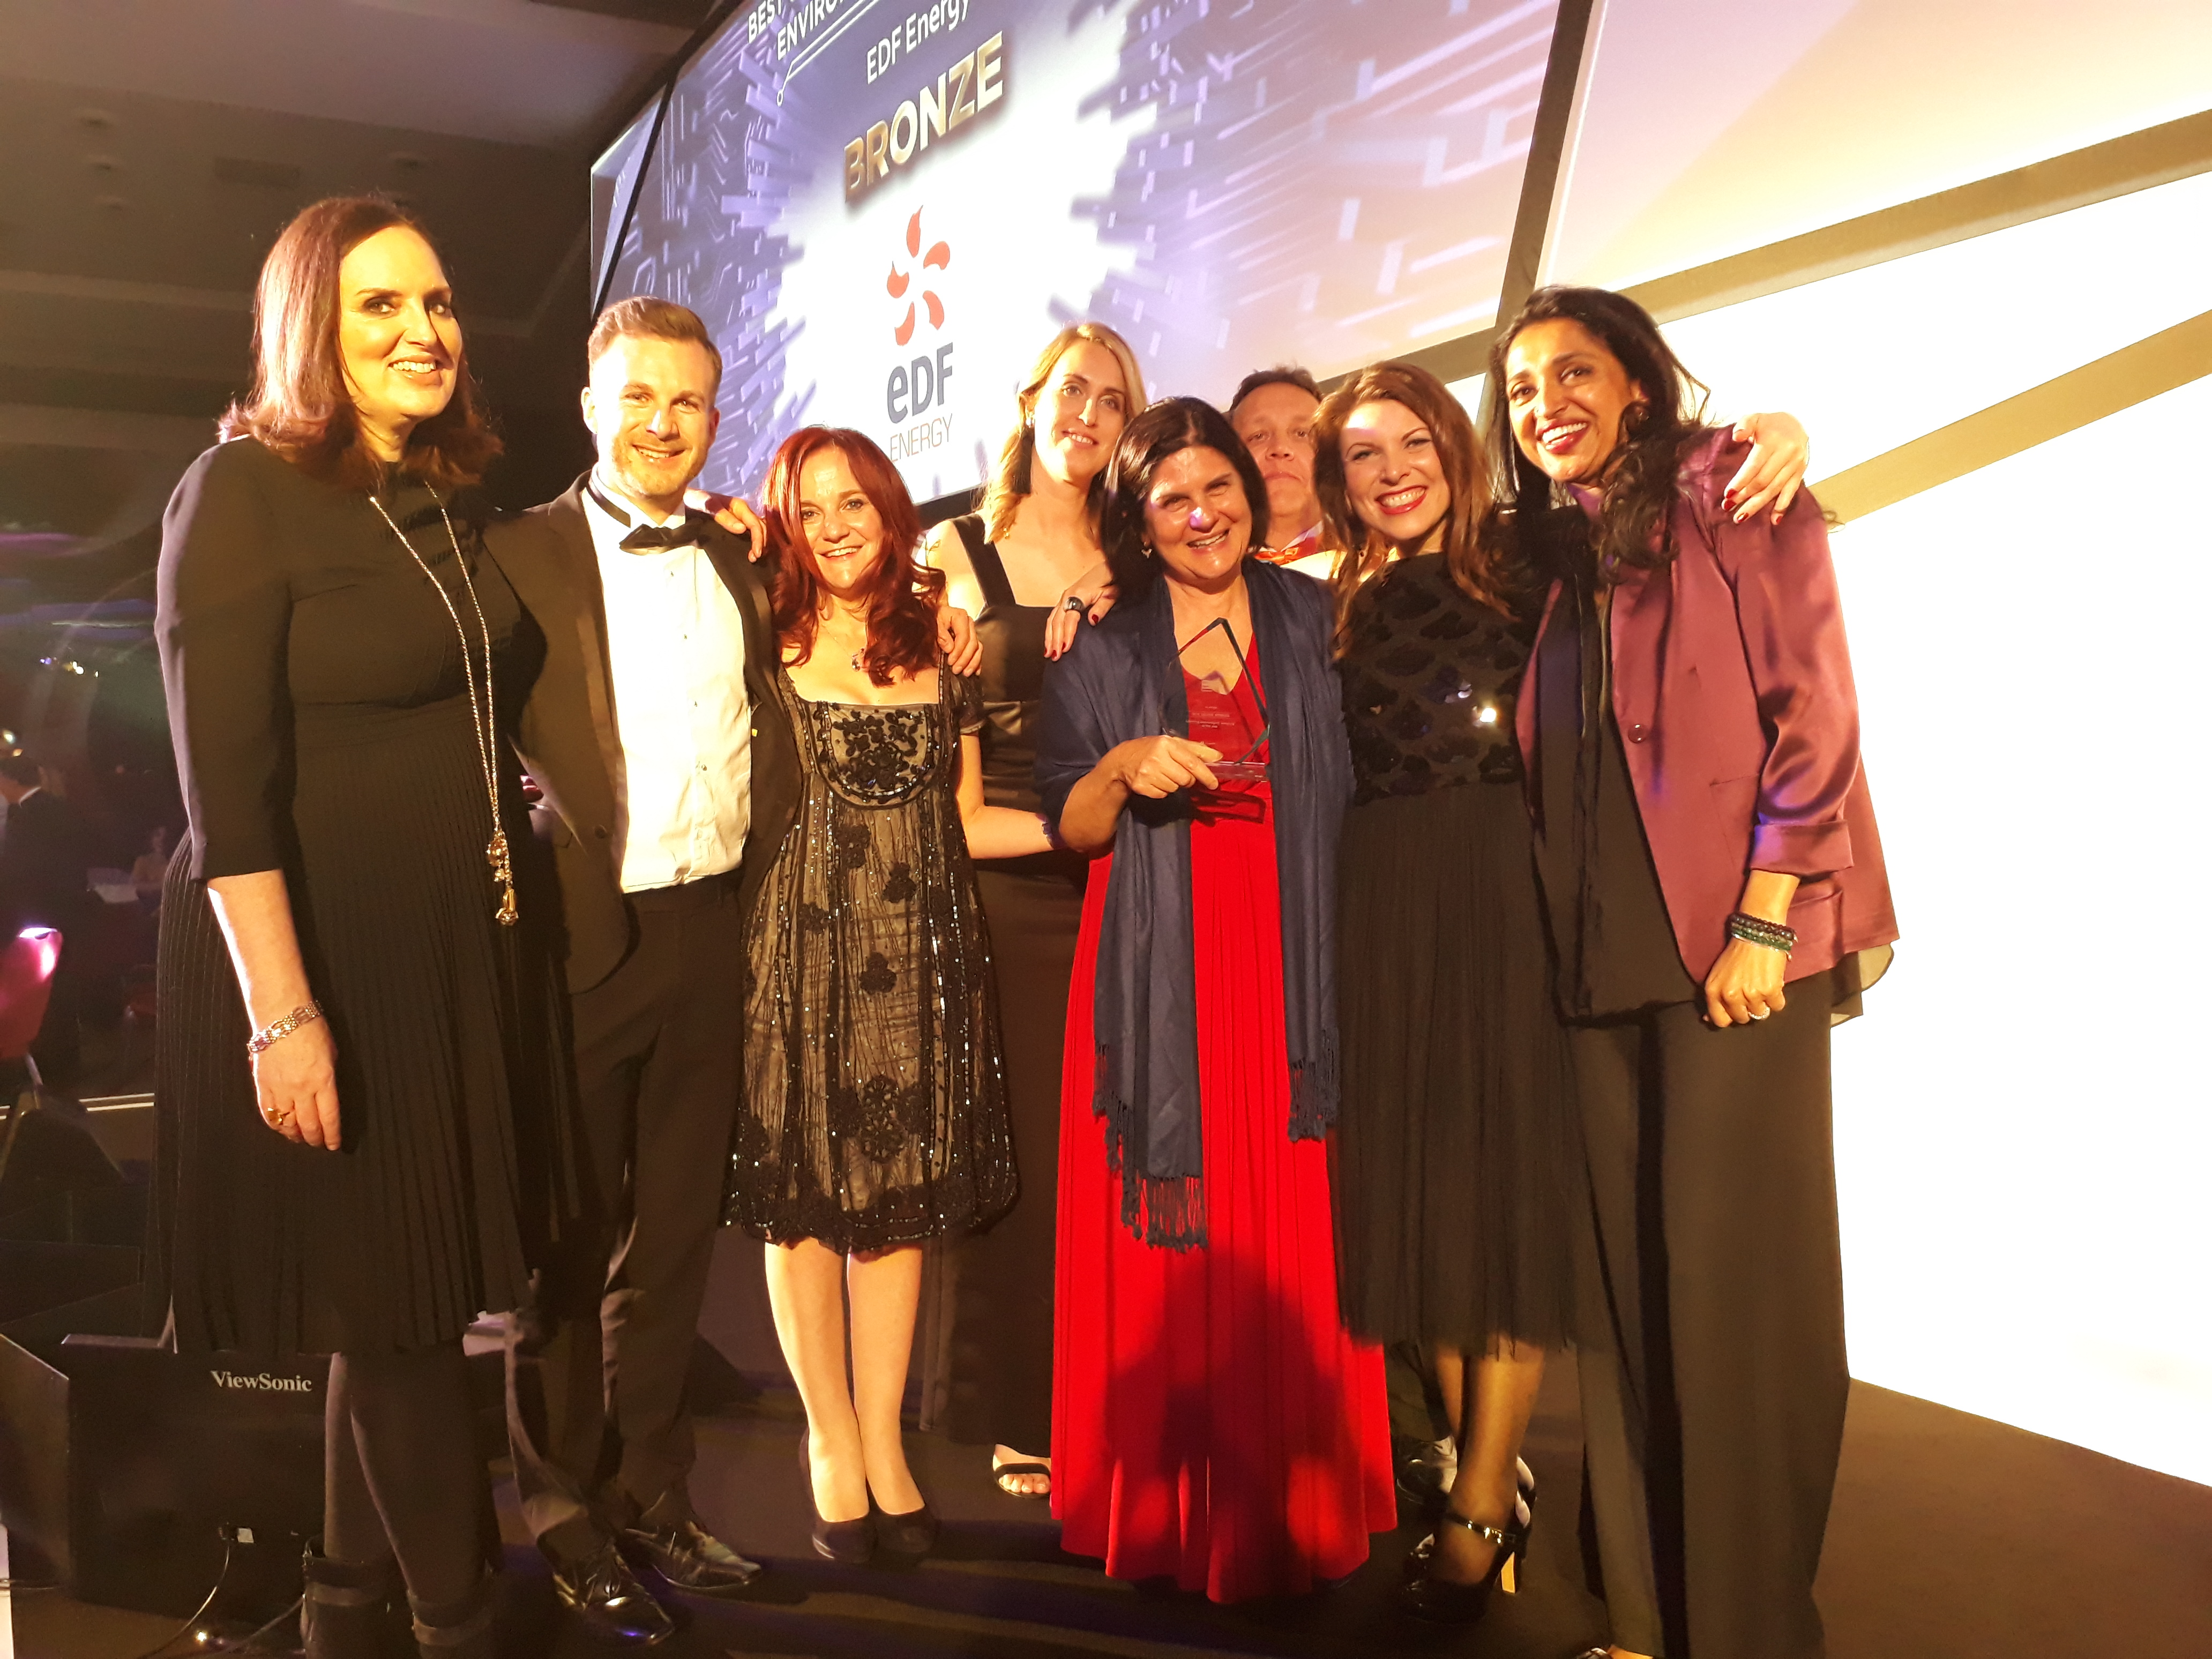 Sponge's founder and managing director, Louise Pasterfield, collects silver award for Learning Technologies Company of the Year